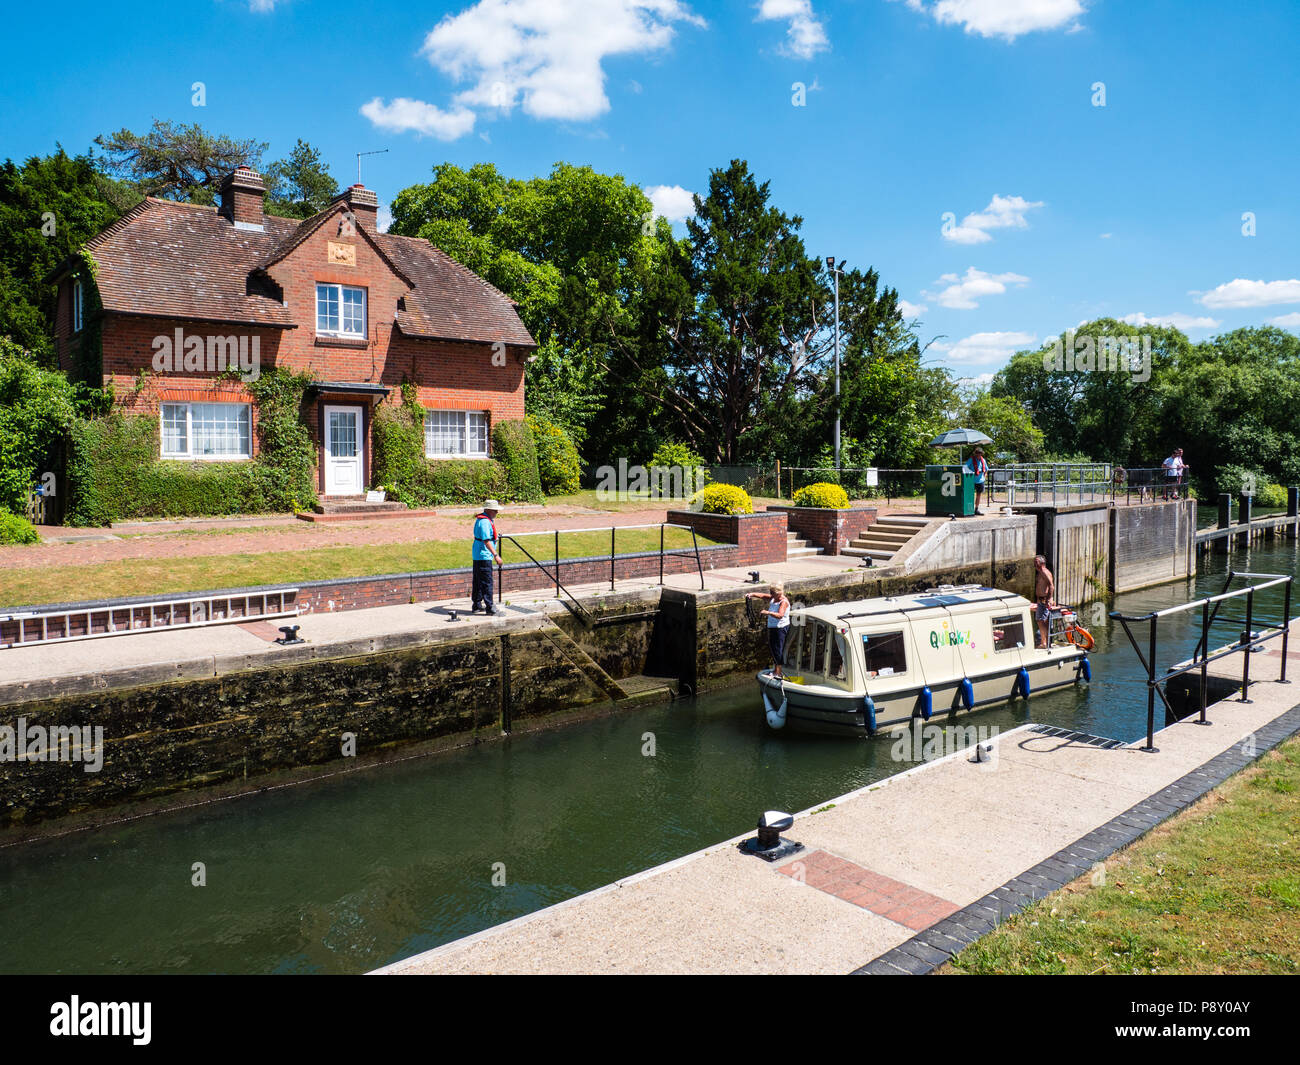 Quirky Boat Using, Hambleden Lock and Weir, River Thames, Berkshire, England, UK, GB. - Stock Image